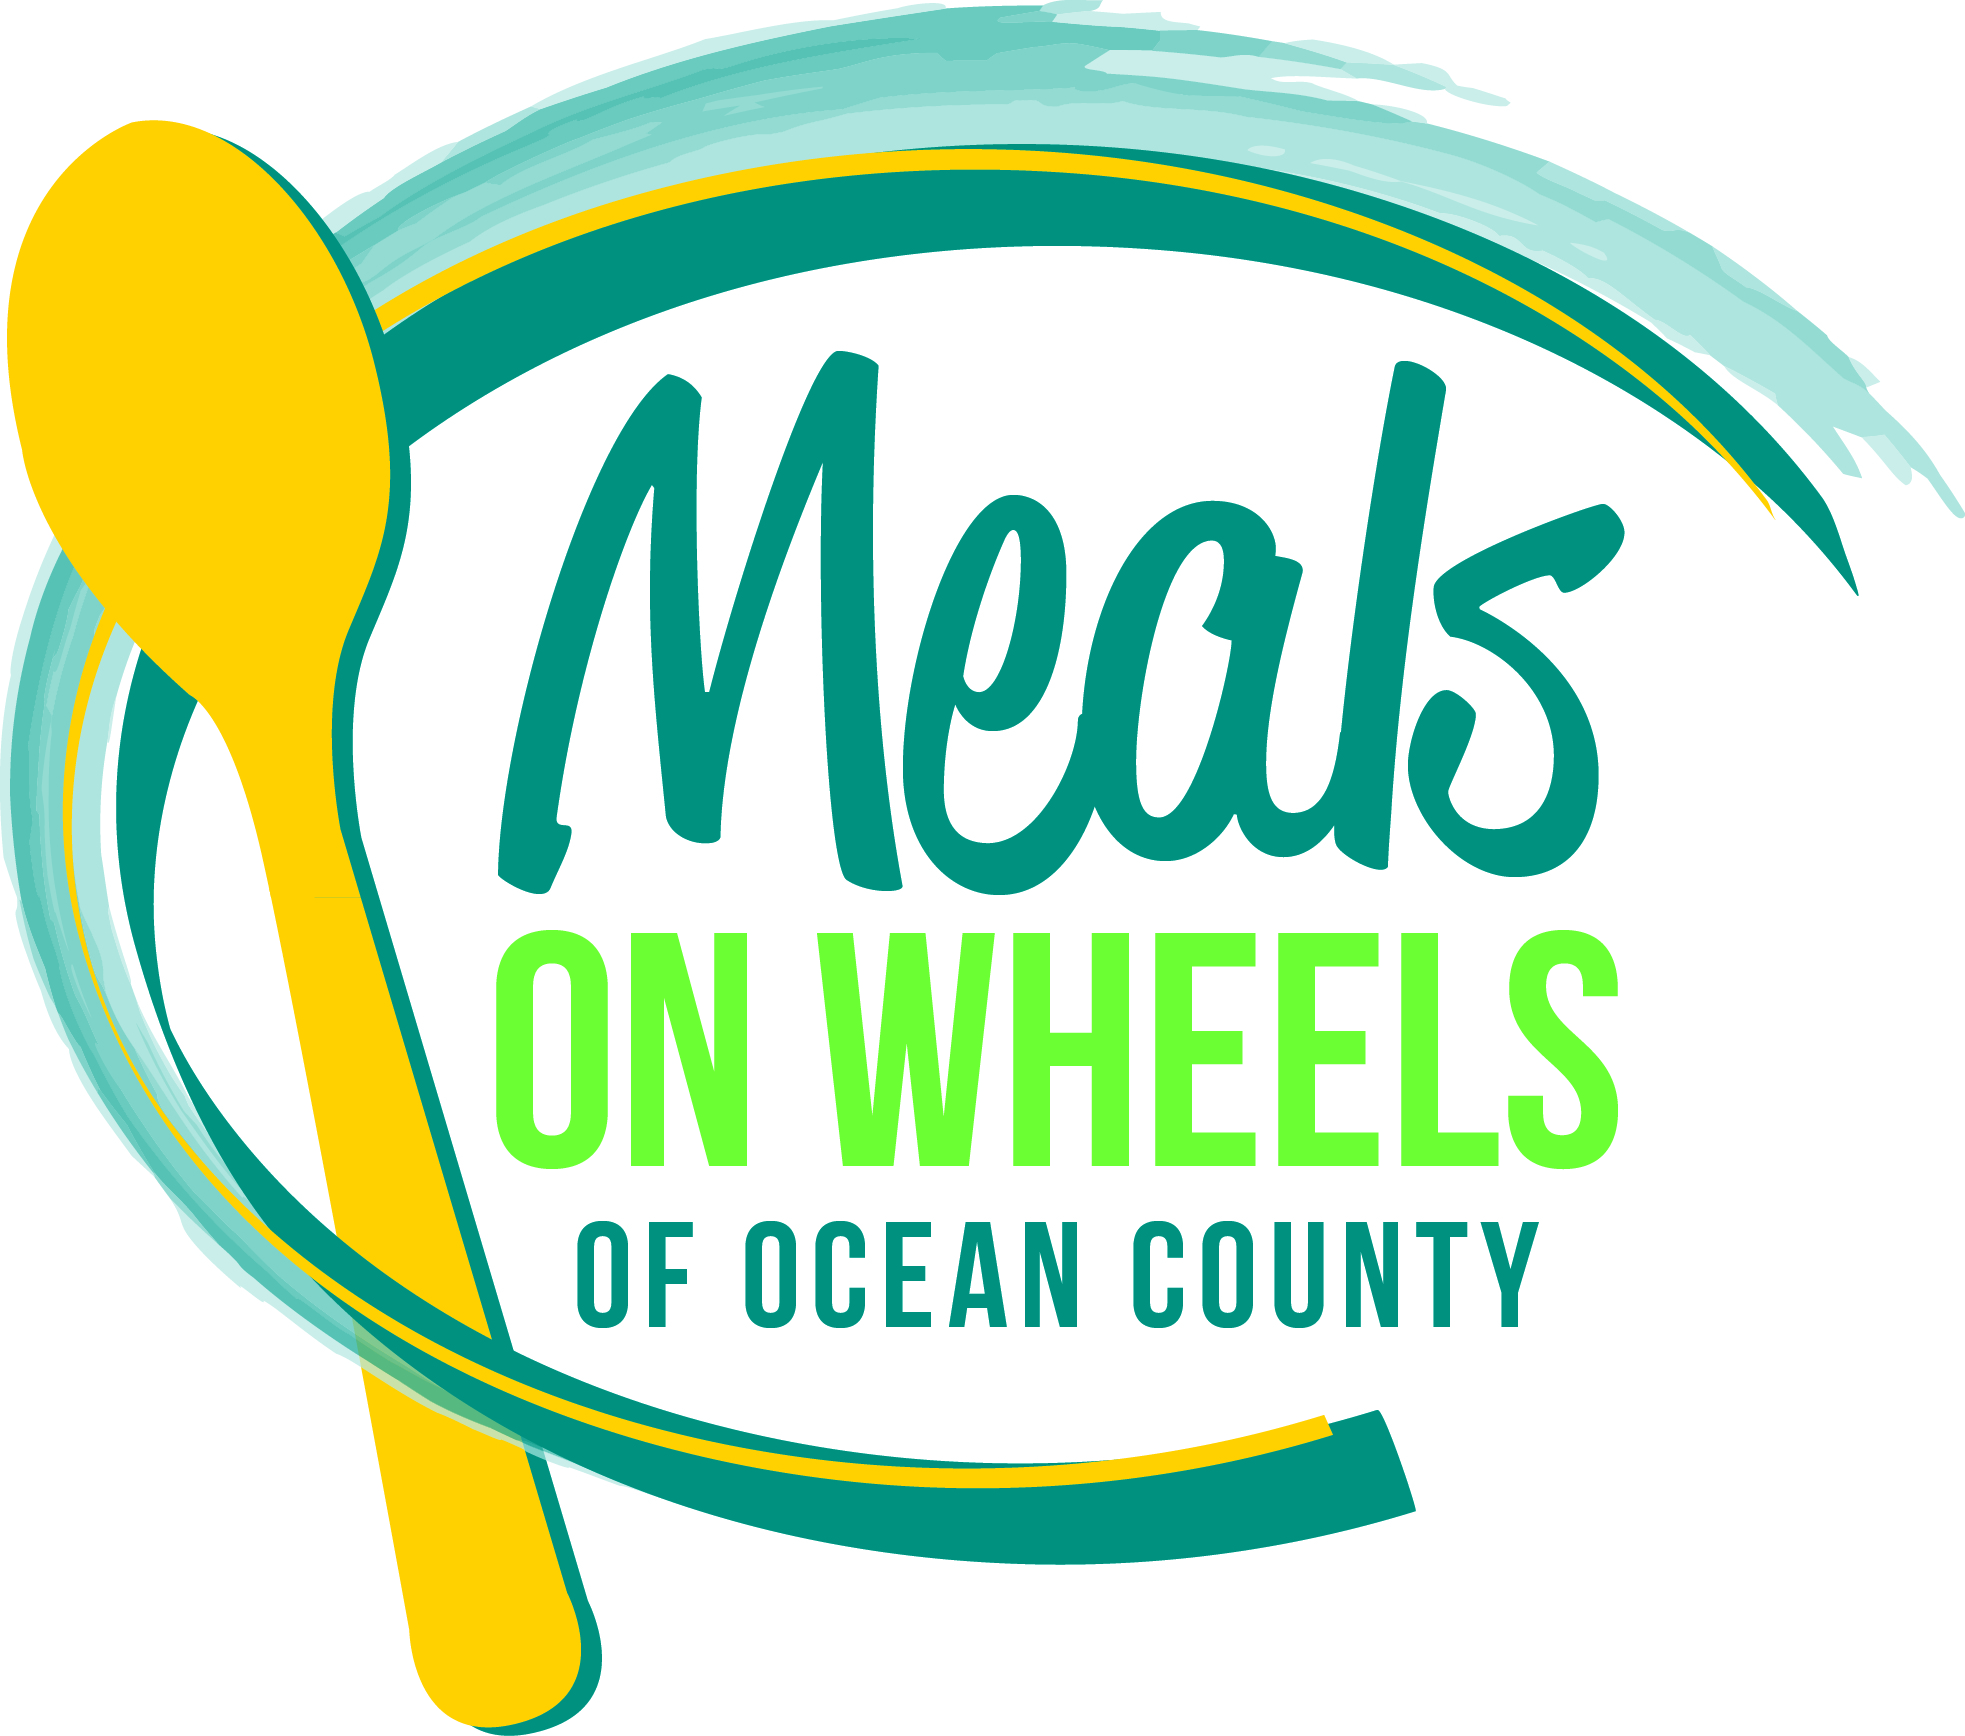 COMMUNITY SERVICES INC OF OCEAN COUNTY